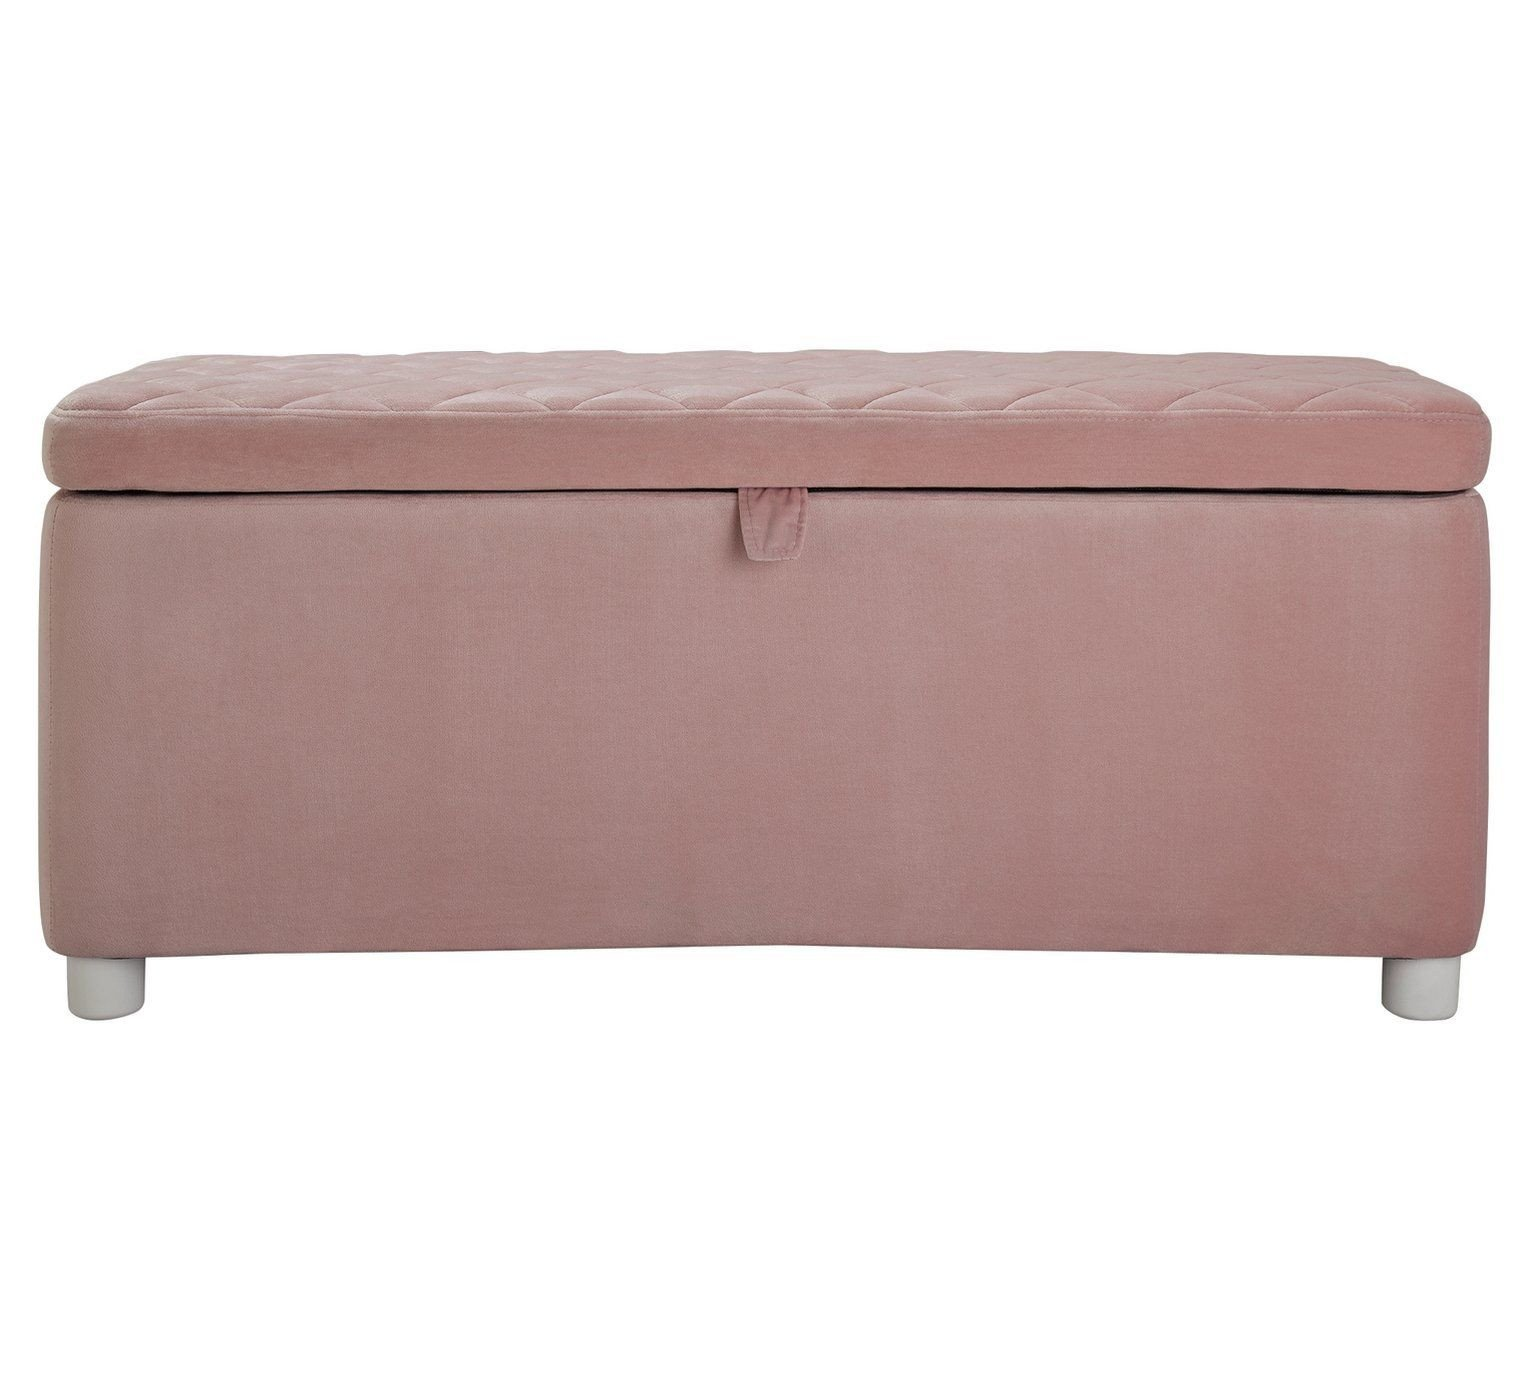 Bedroom Bench with Back Lovely Buy Argos Home Velvet Ottoman Blush Pink